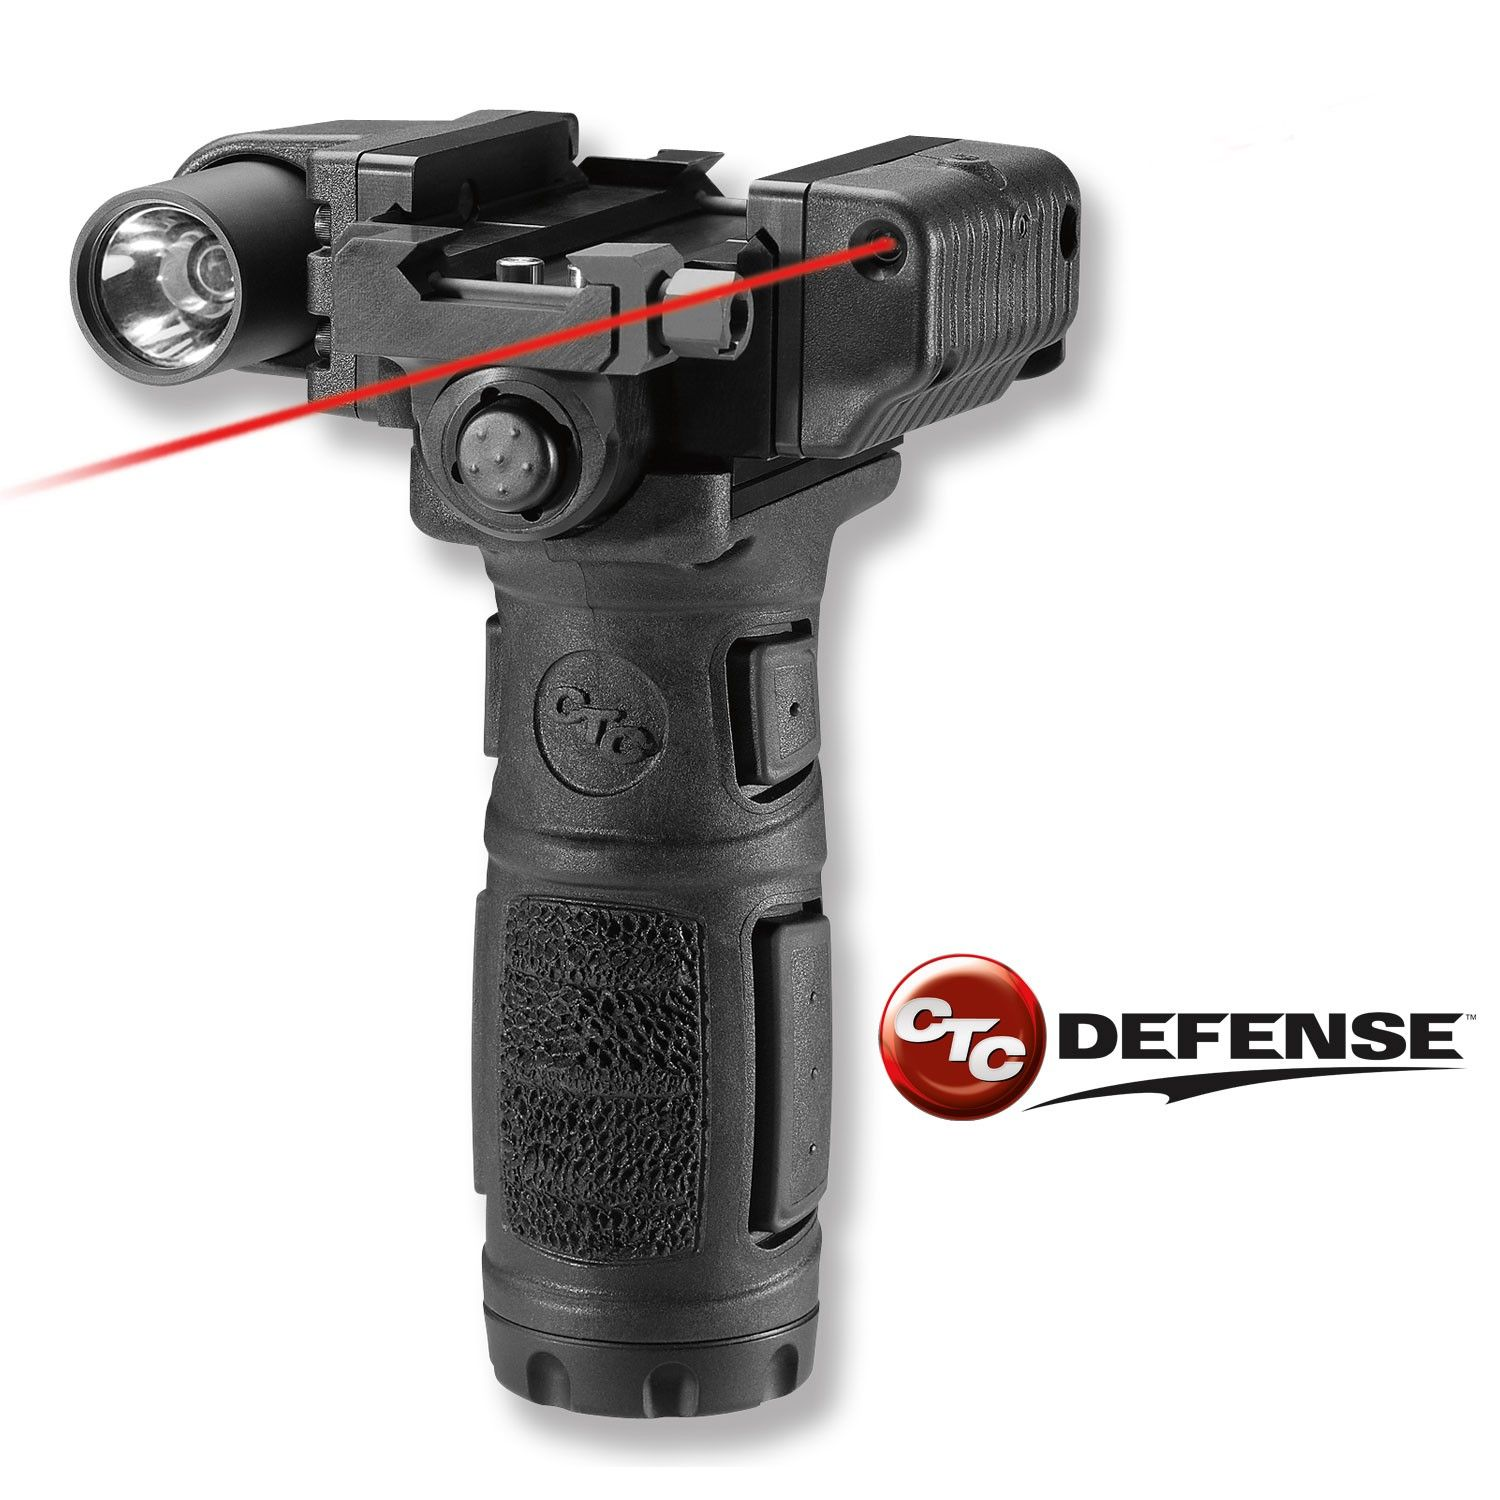 Ctc defense modular vertical foregrip for ar15 official